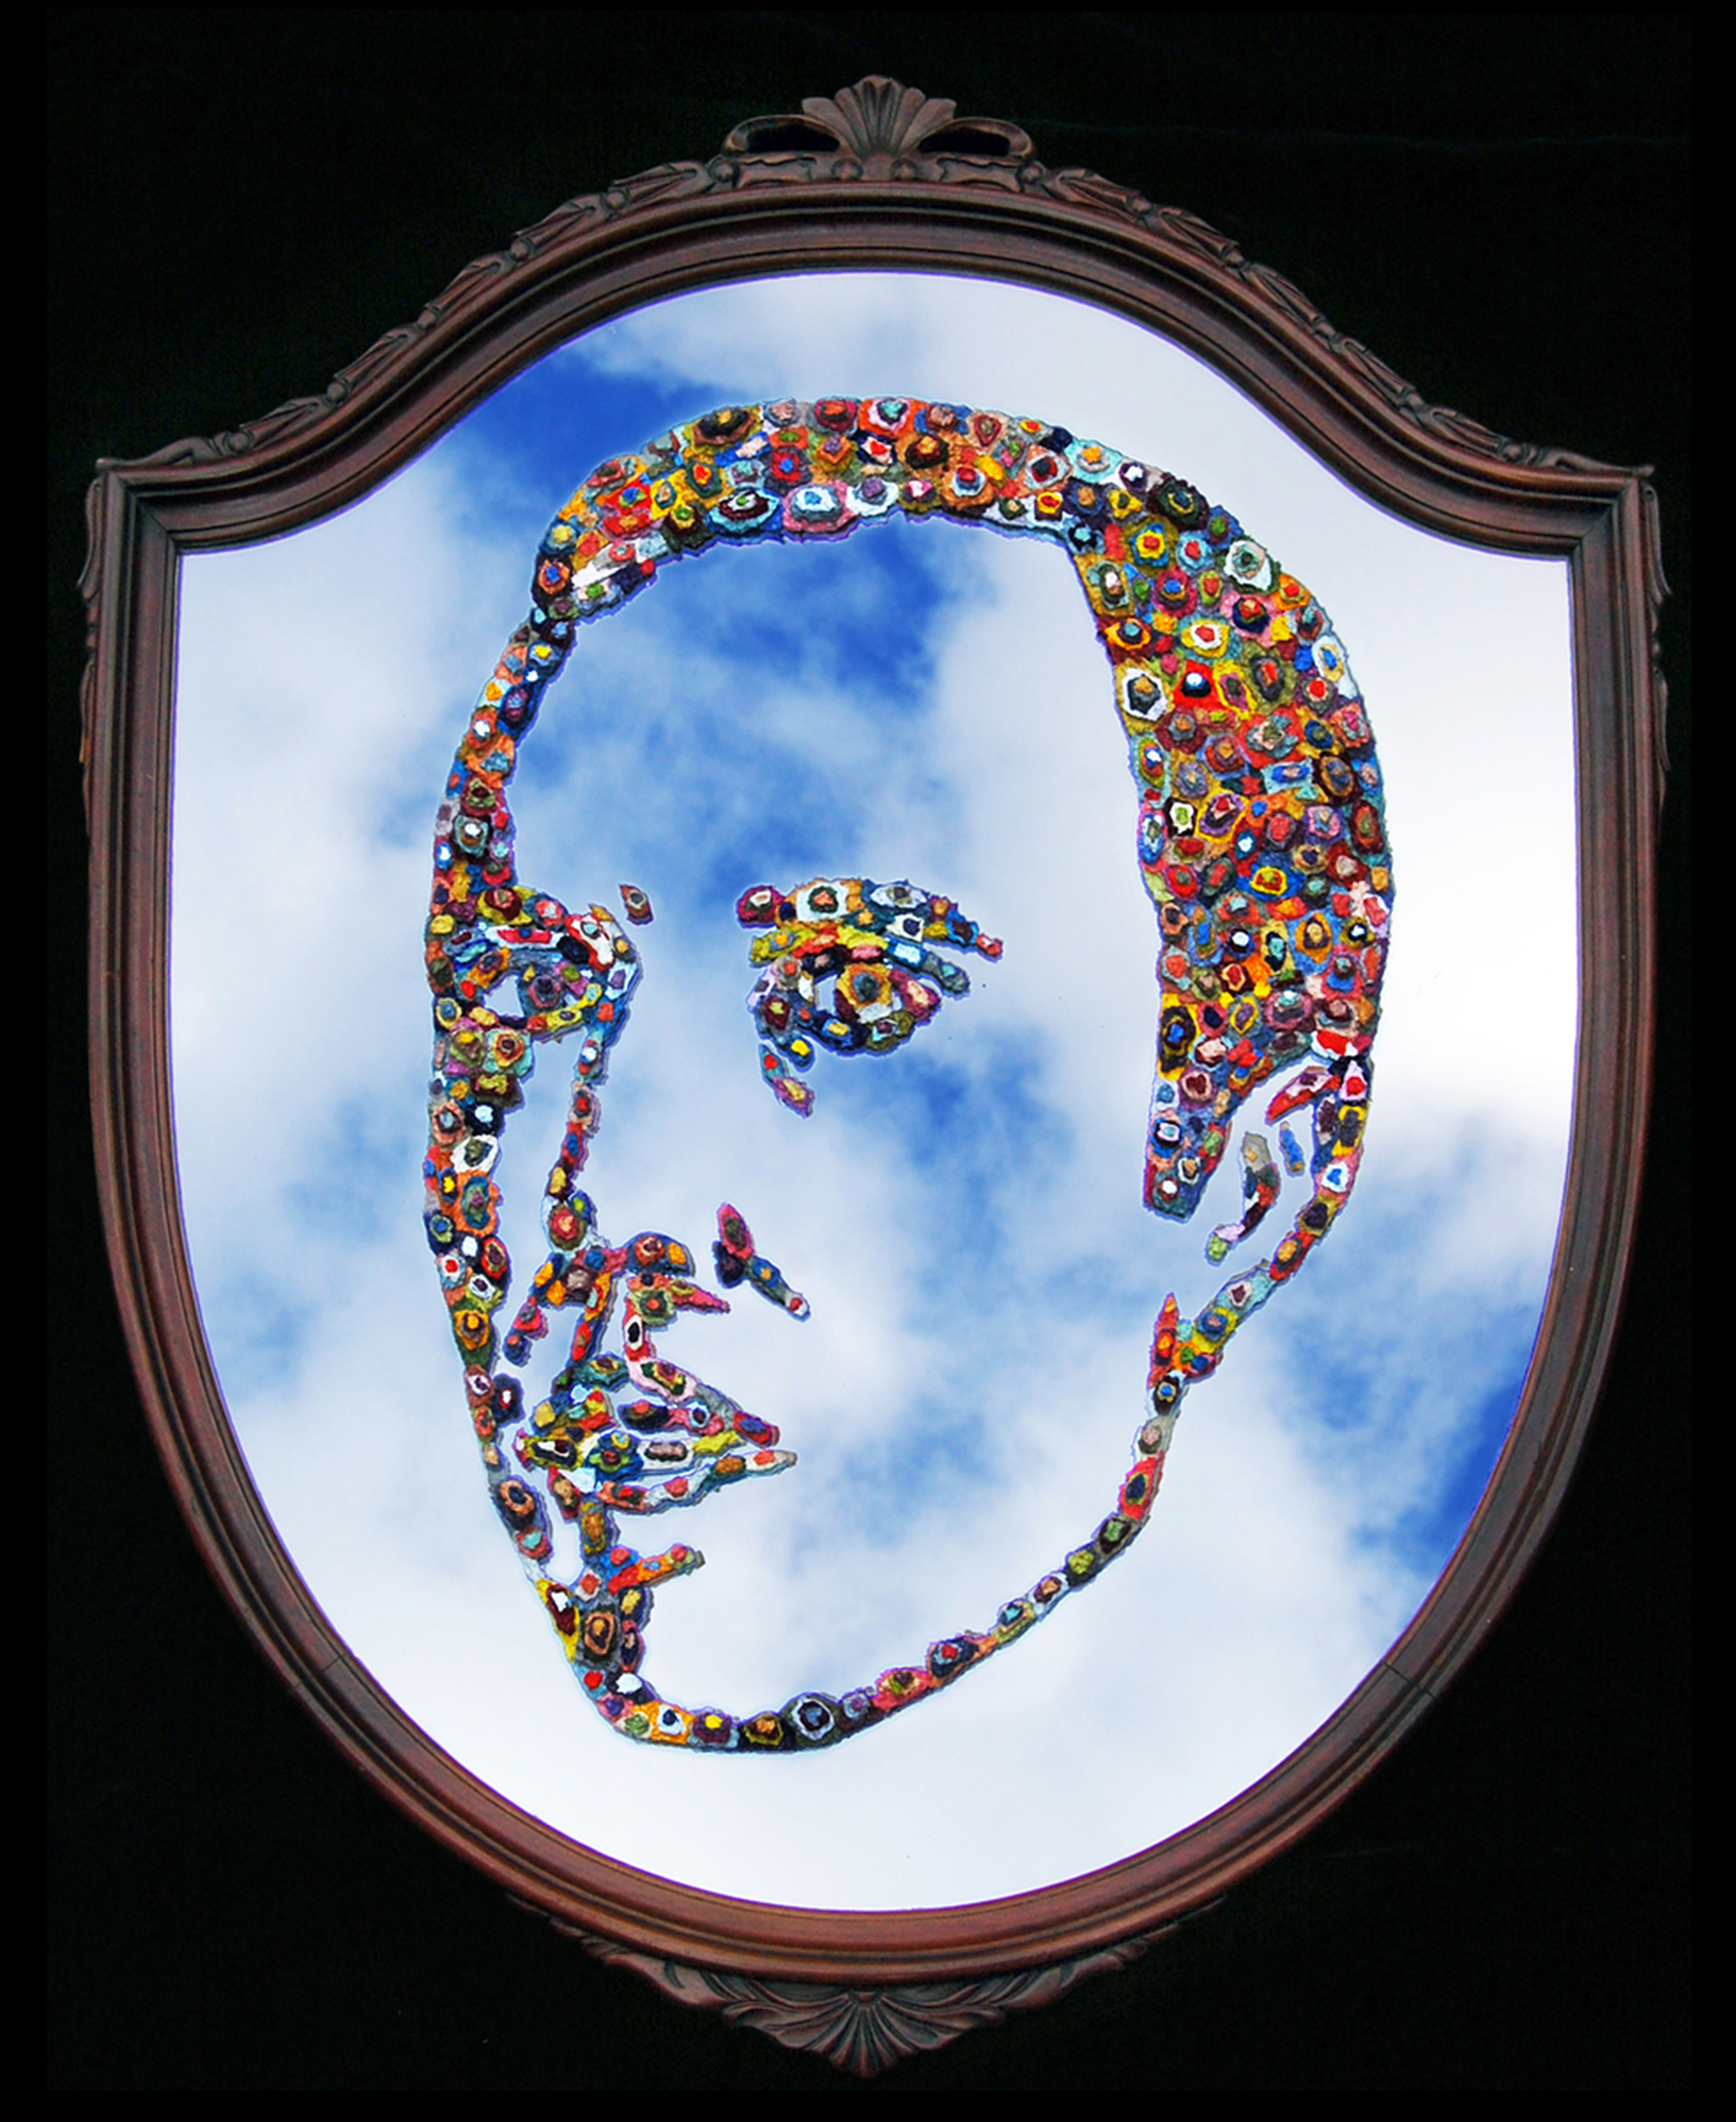 AP XII (Self-Portrait), 2009  |   36 x 29 inches  |  oil on Art Nouveau mirror (circa 1930)